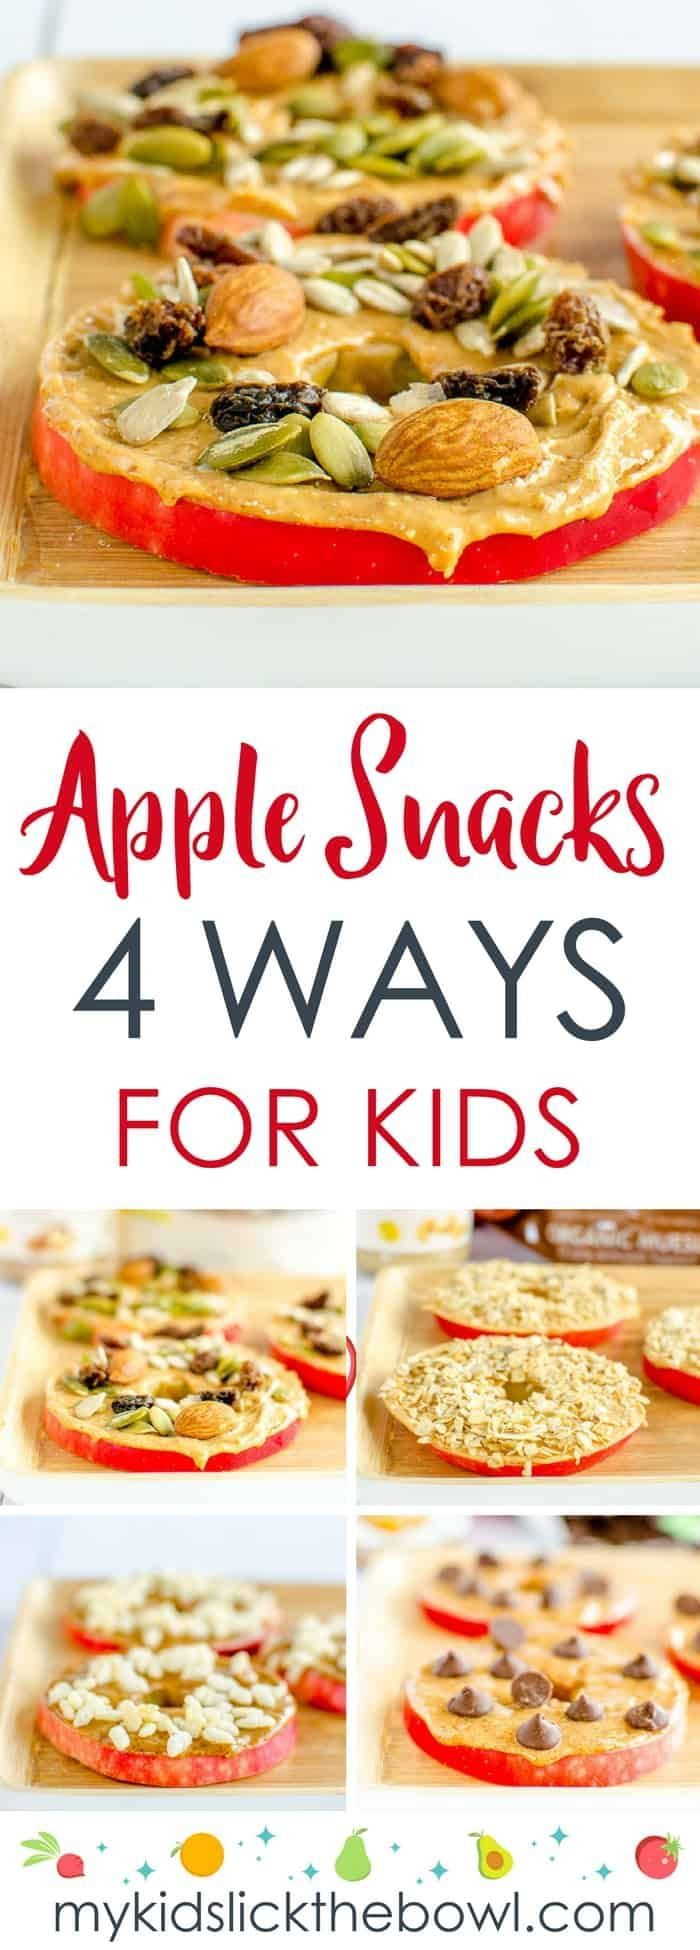 Easy Apple Snacks For Kids - 4 healthy fun and quick snack ideas for kids made with apple slices